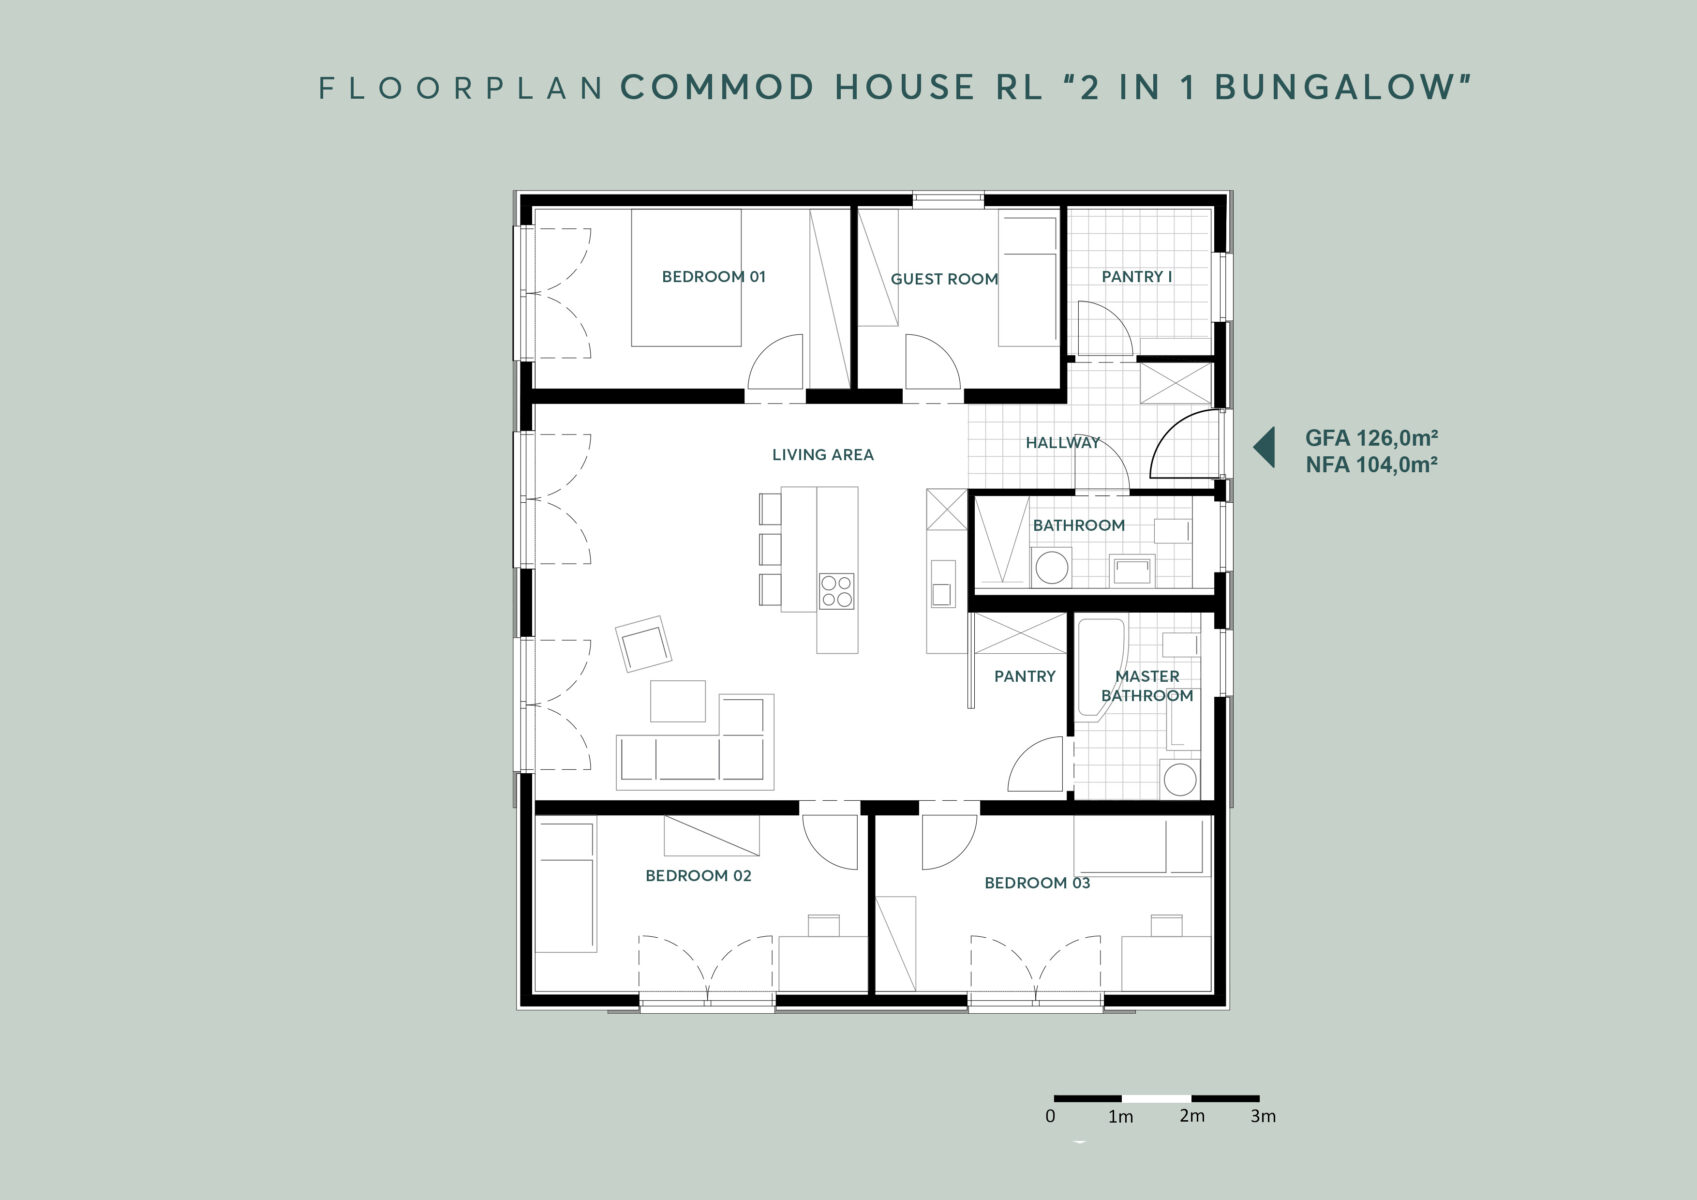 """COMMOD HOUSE """"2 IN 1 BUNGALOW"""" 126m² GFA"""